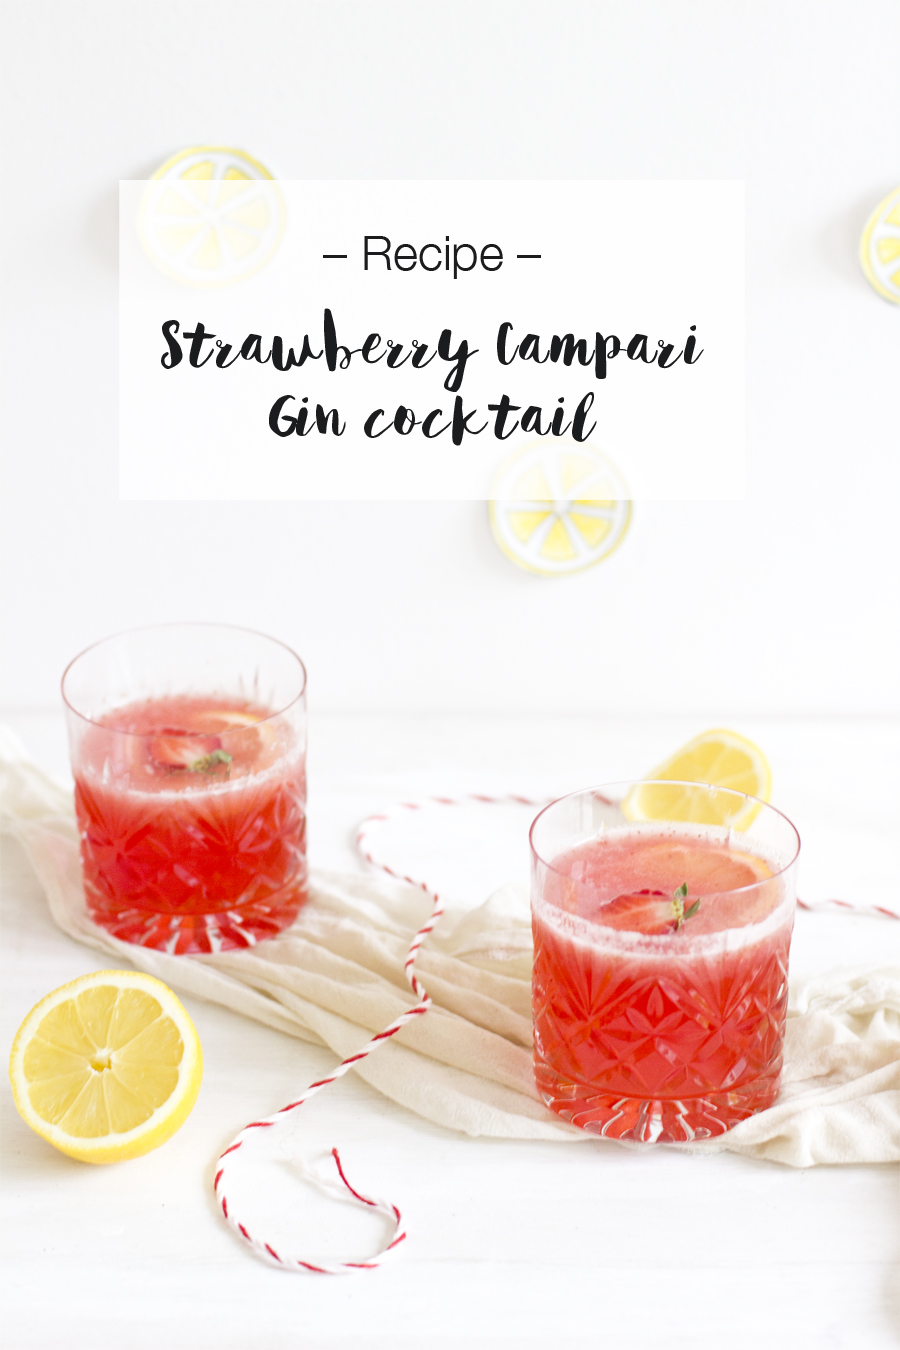 Strawberry campari gin cocktail recipe | LOOK WHAT I MADE ...